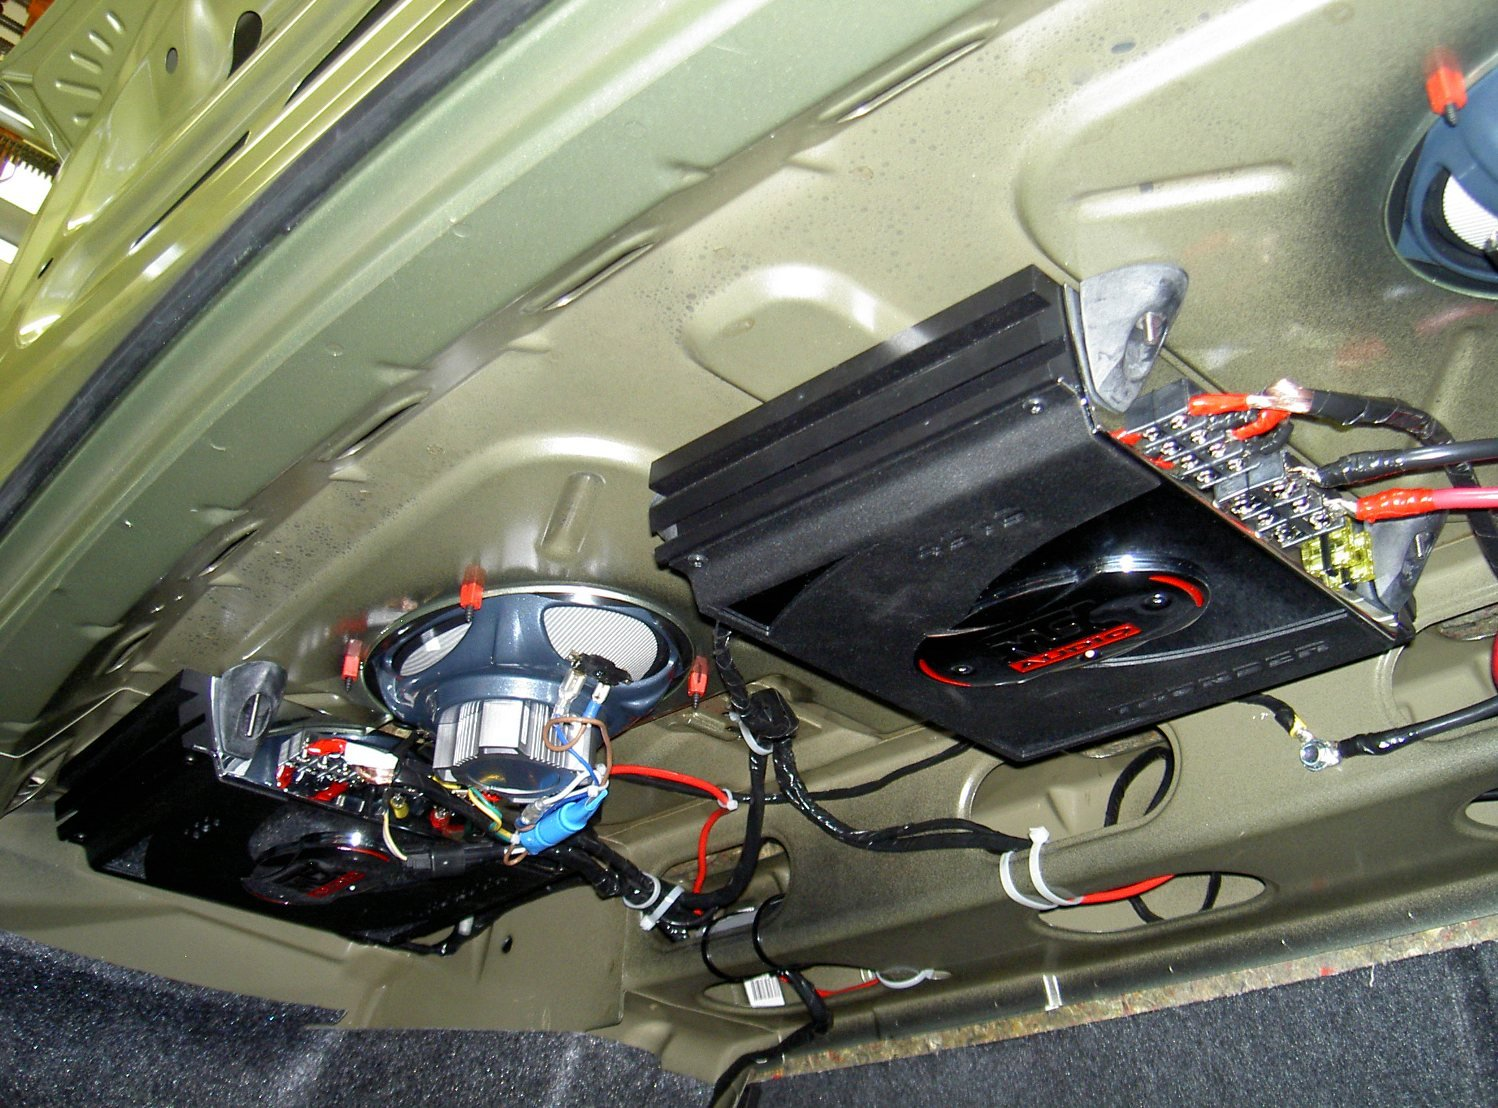 Infinity Amplifier Wiring Diagram 2005 Mustang Gt Has Anyone Replaced The Woofers In The